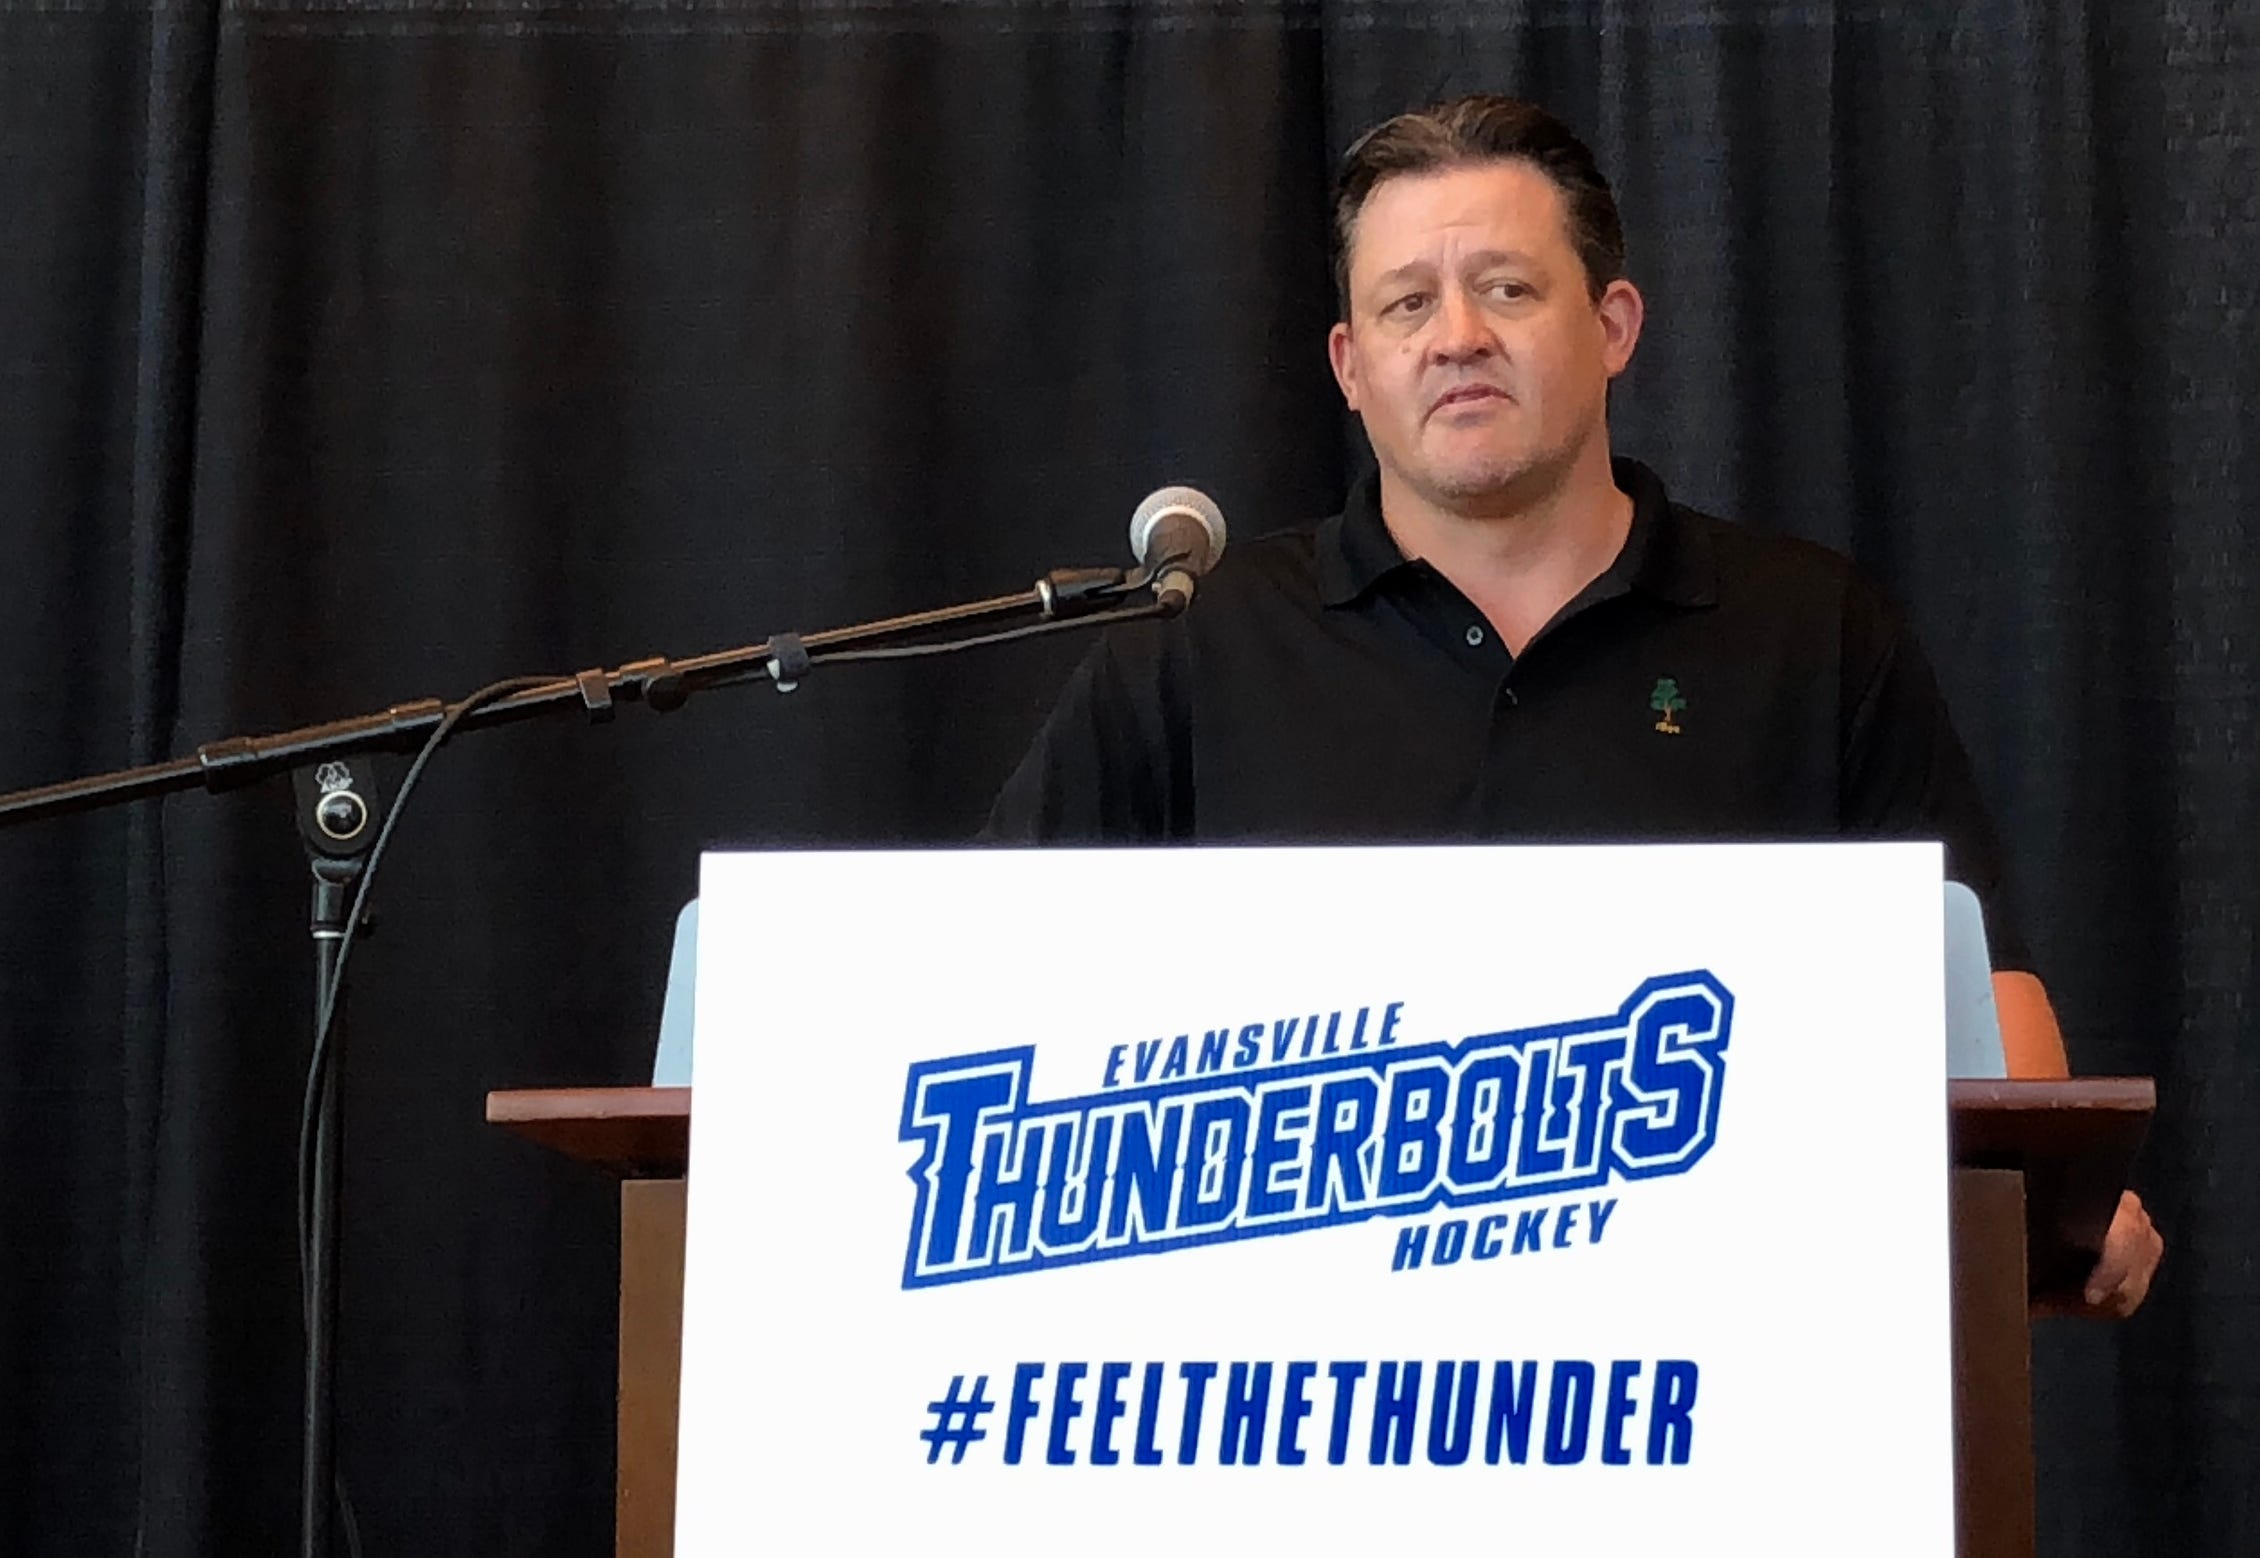 Ian Moran, who had a lengthy playing career with the Pittsburgh Penguins, has resigned after one season coaching the Evansville Thunderbolts.